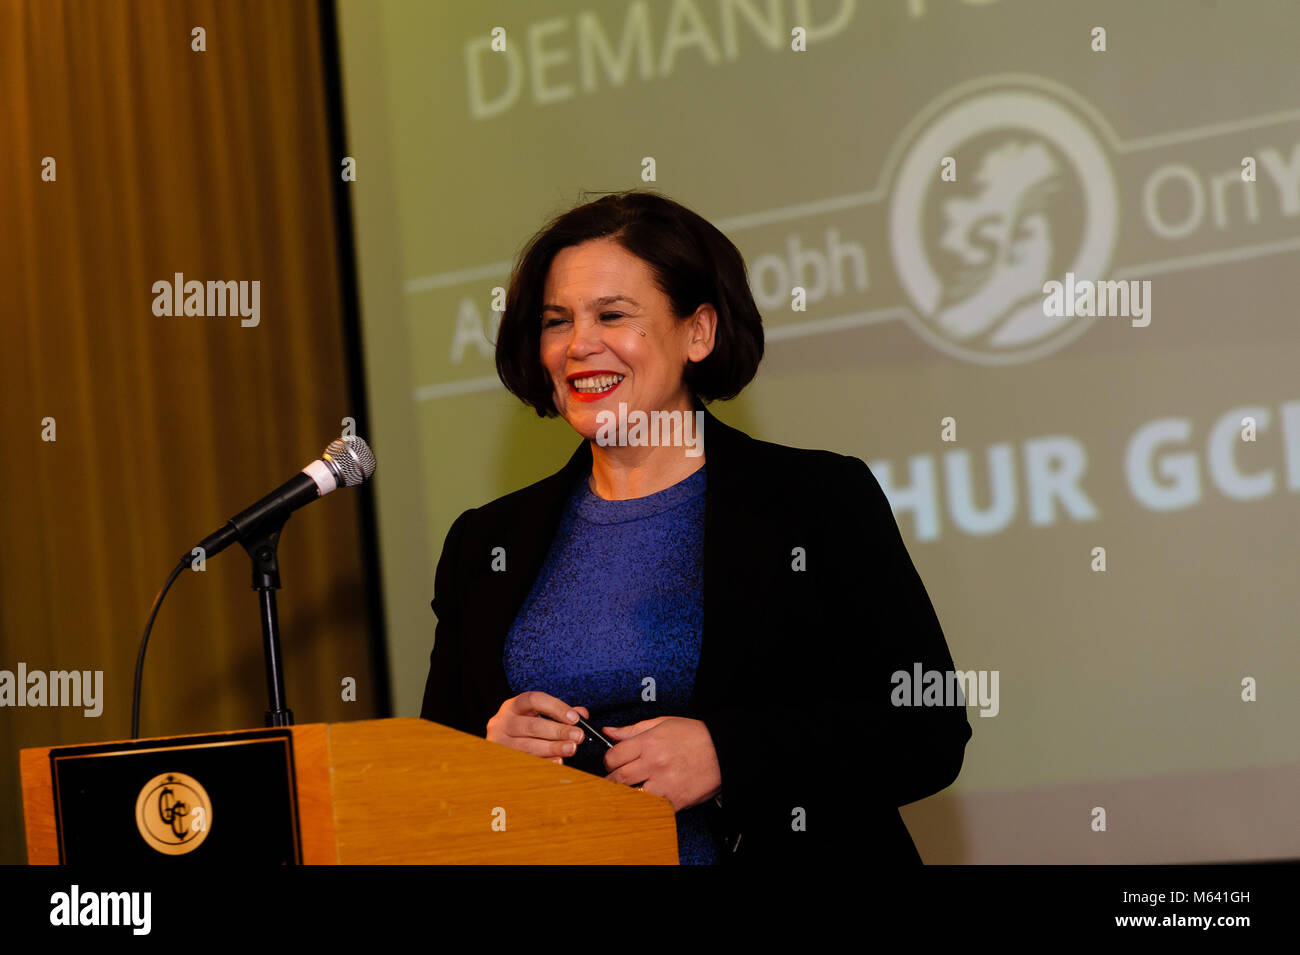 County Armagh, Northern Ireland. 27th Feb, 2018. Mary Lou McDonald, Sinn Fein President speaking at a public meeting - Stock Image